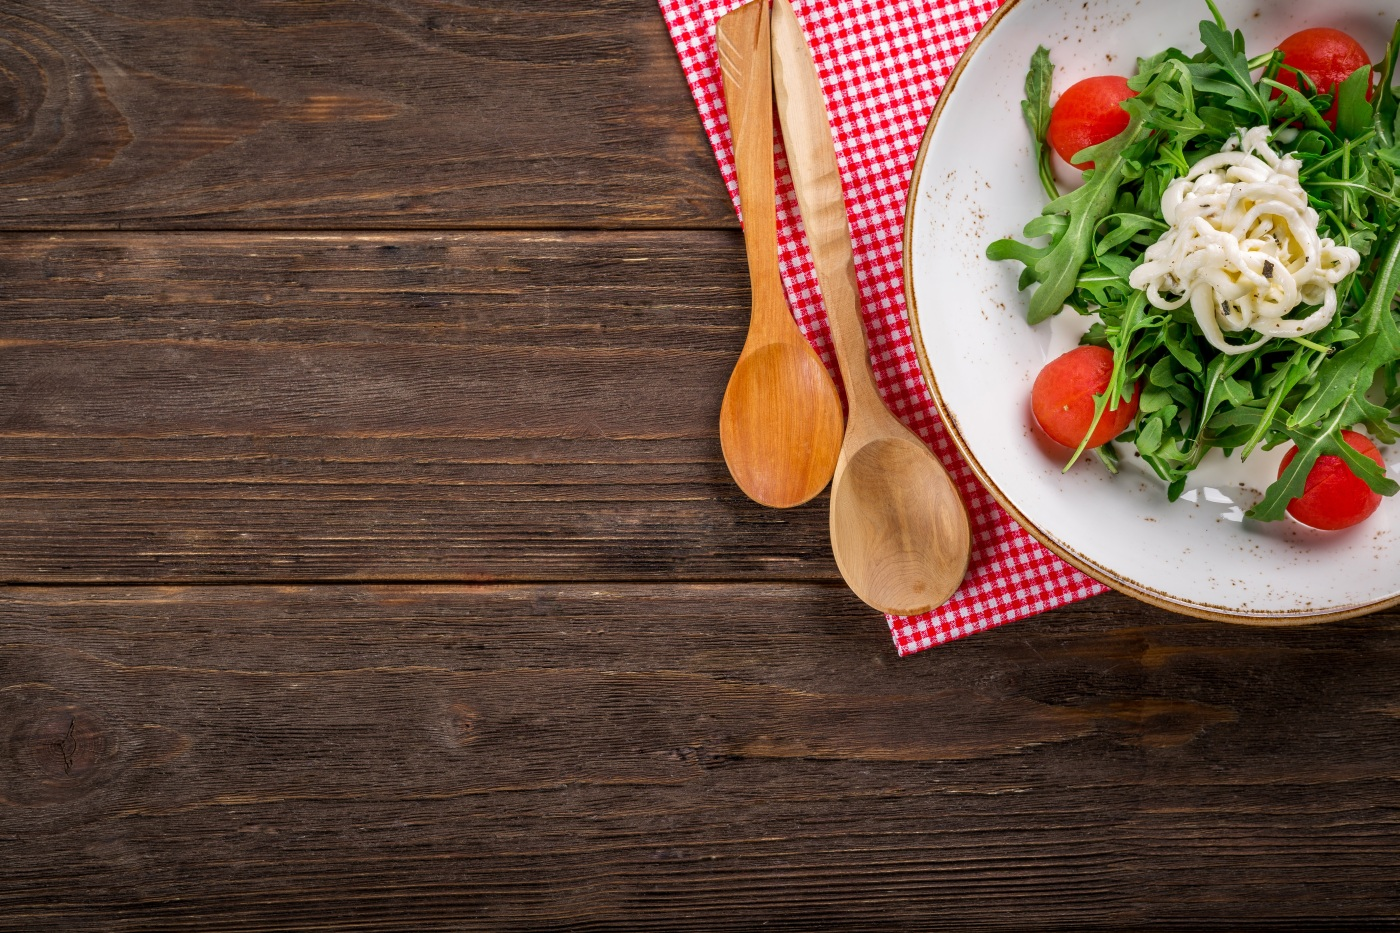 Image of salad on wooden table